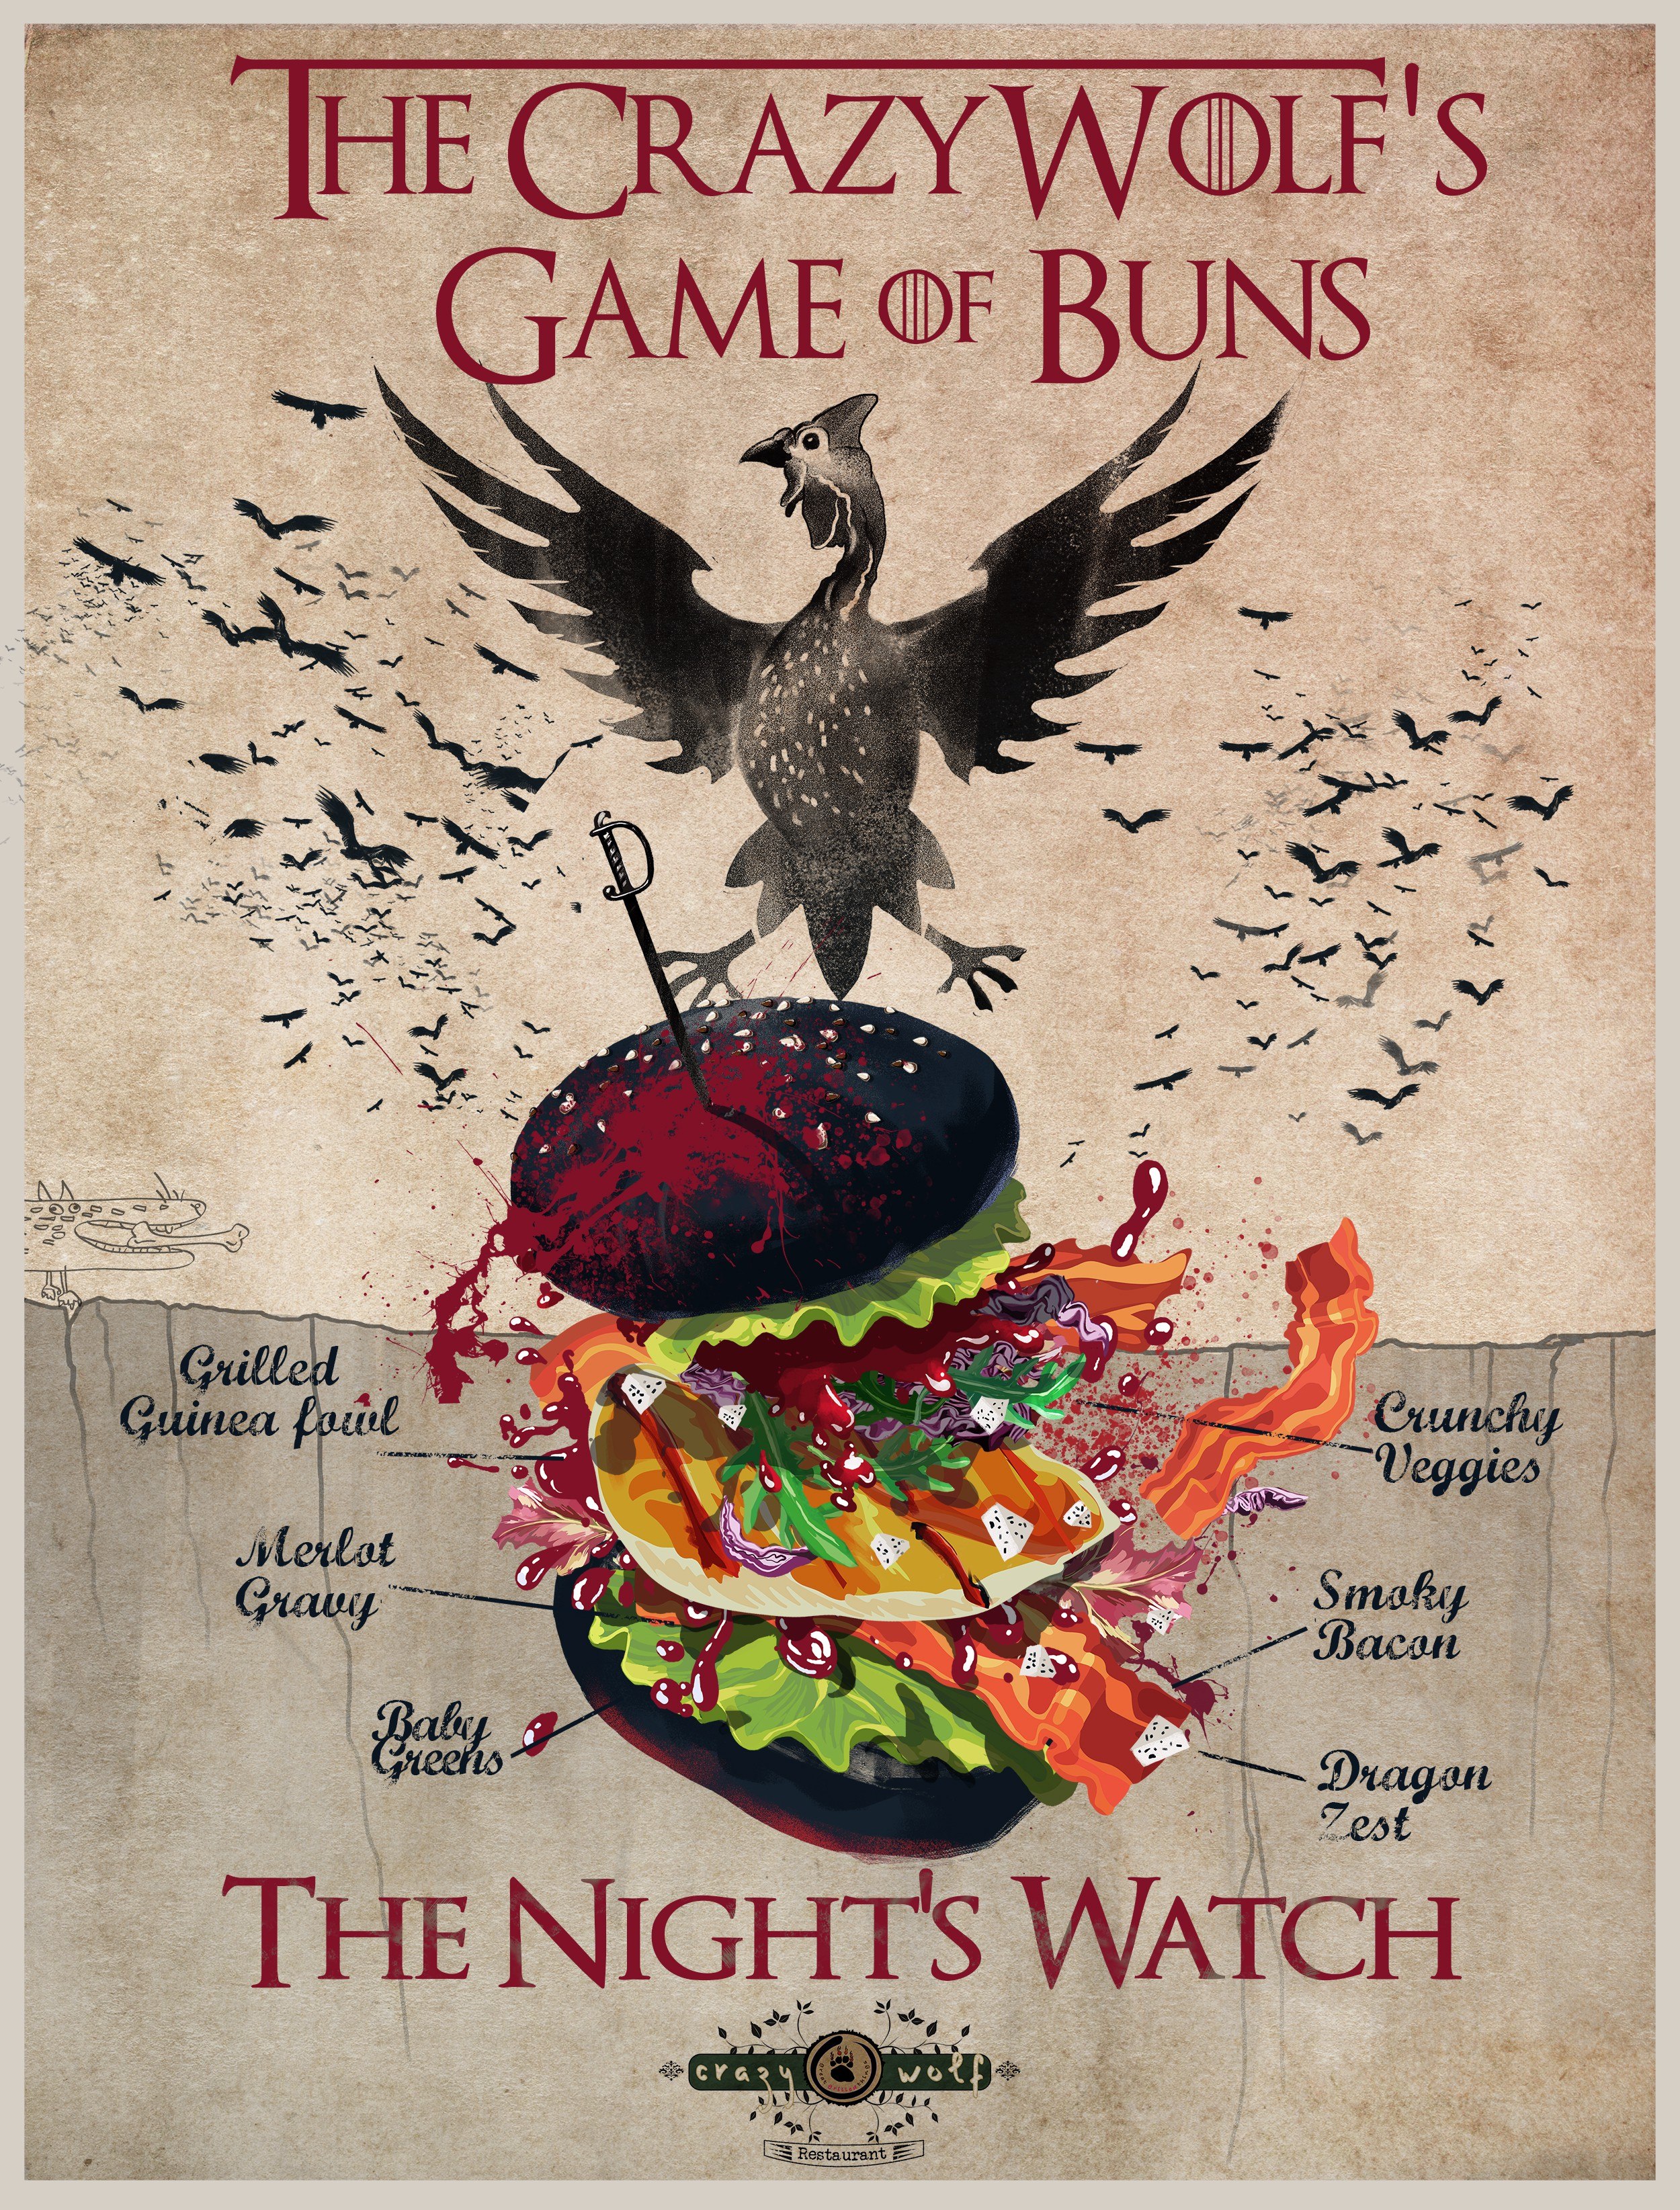 CrazyWolf's Game of Buns